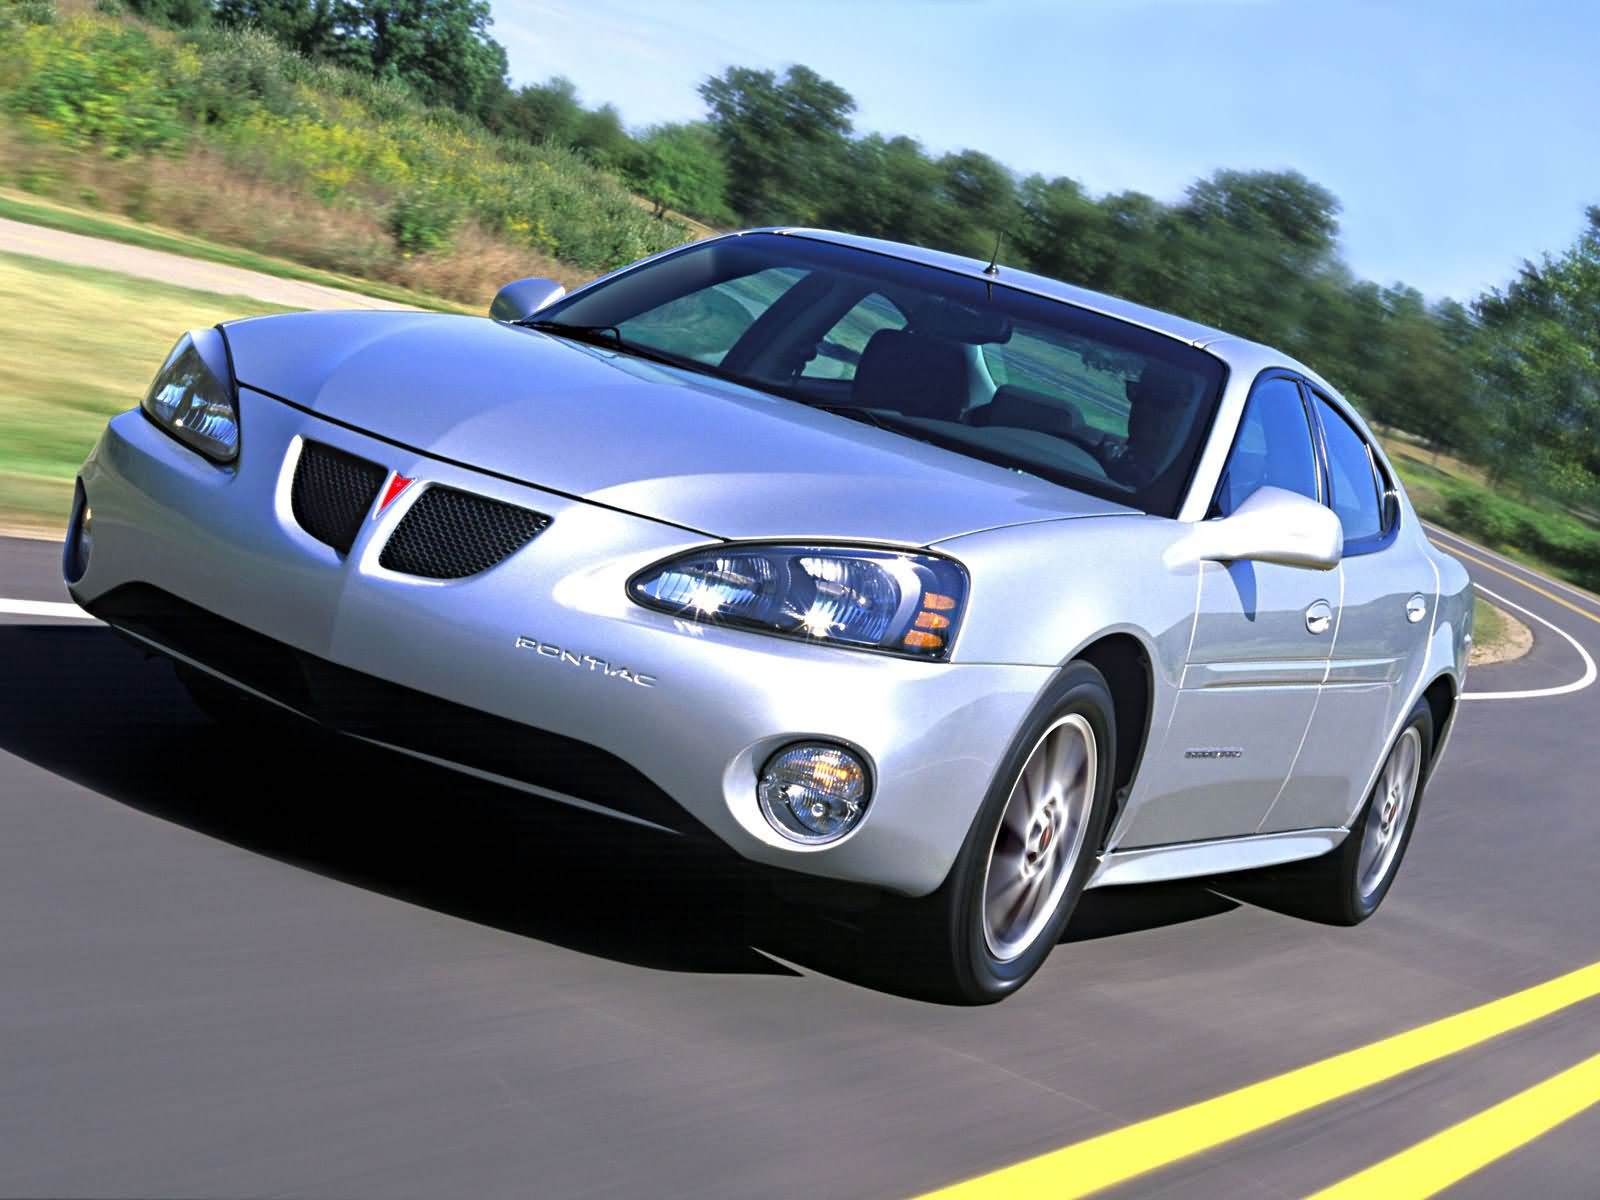 Pontiac Grand Prix photo 3156